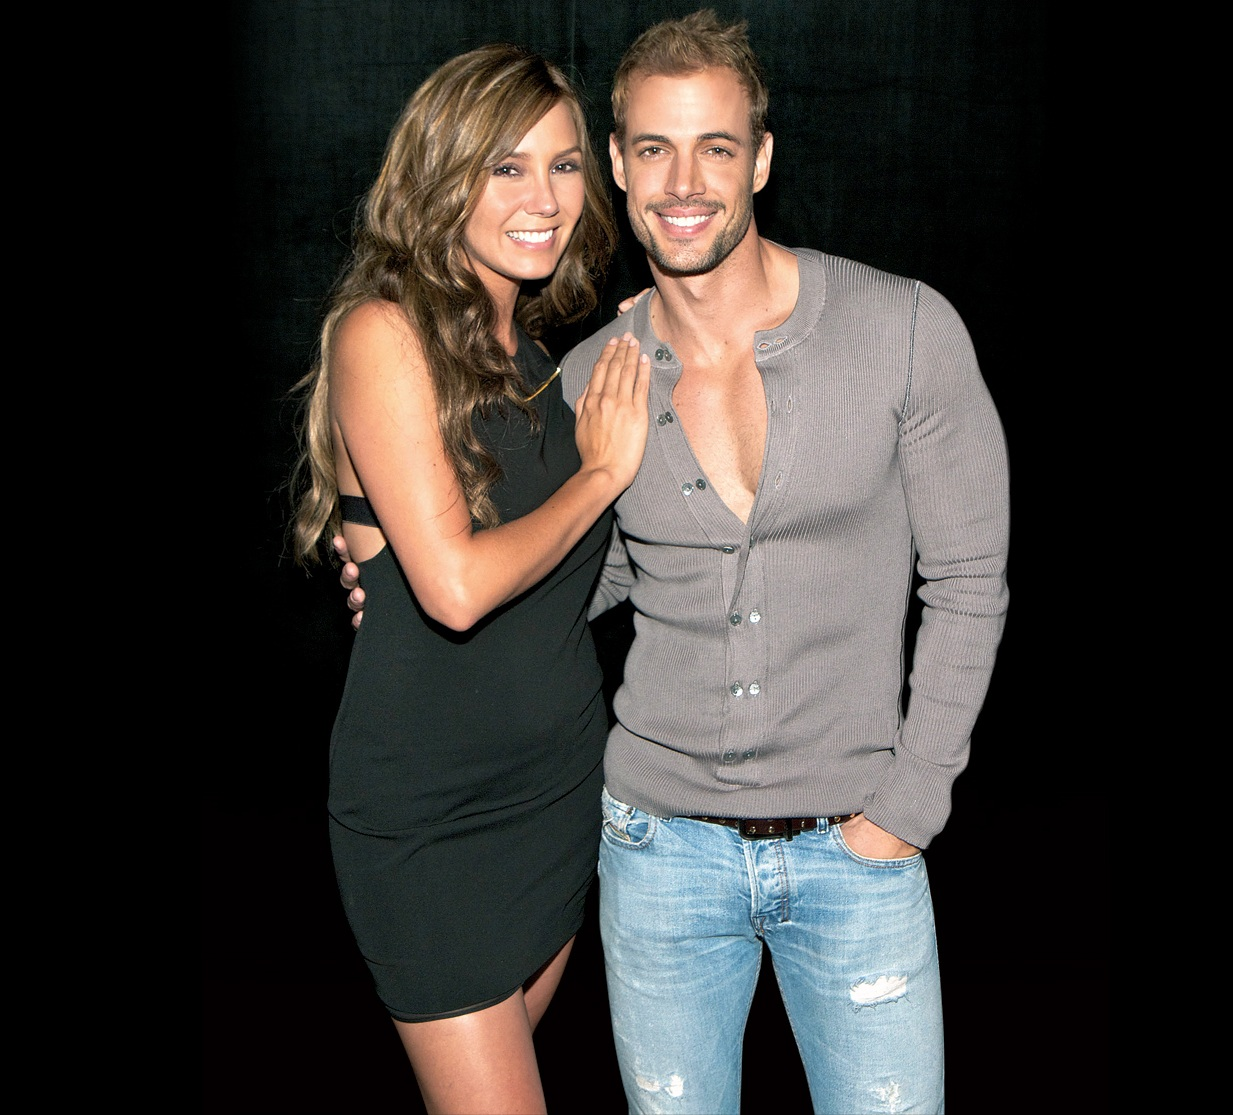 Elizabeth Gutierrez Y William Levy | Search Results ...William Levy Y Elizabeth Gutierrez